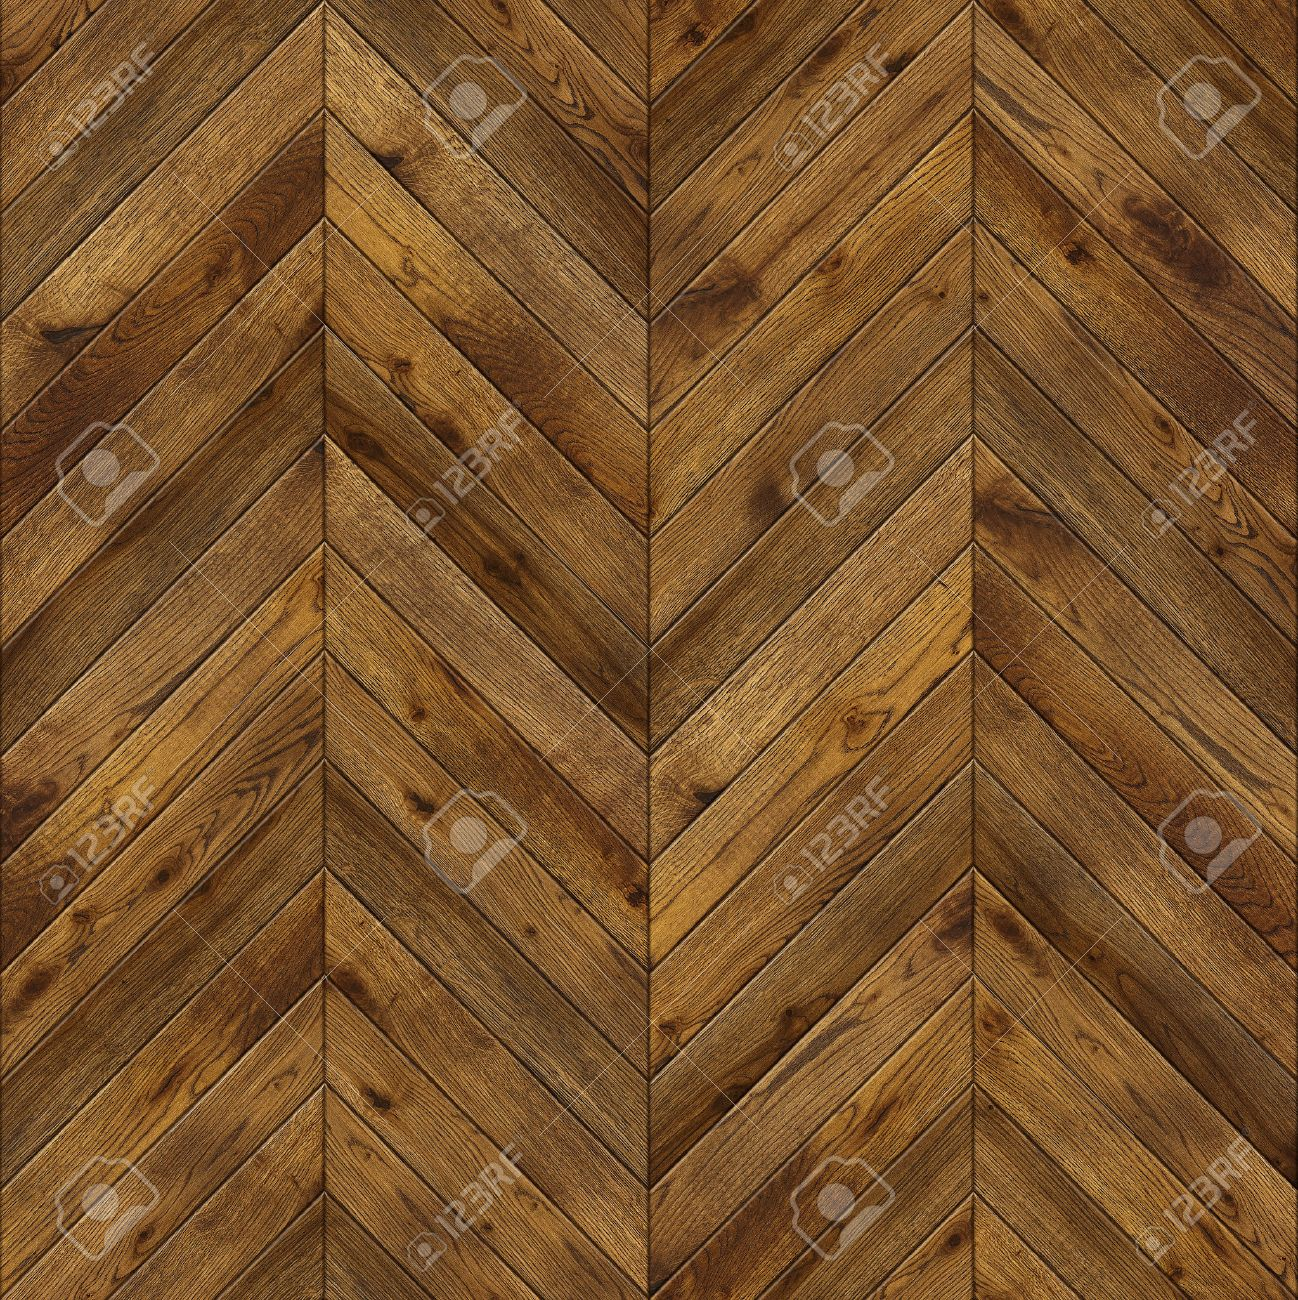 wood floor designs herringbone. Unique Floor Natural Wooden Background Herringbone Grunge Parquet Flooring Design  Seamless Texture For 3d Interior Stock Photo In Wood Floor Designs Herringbone